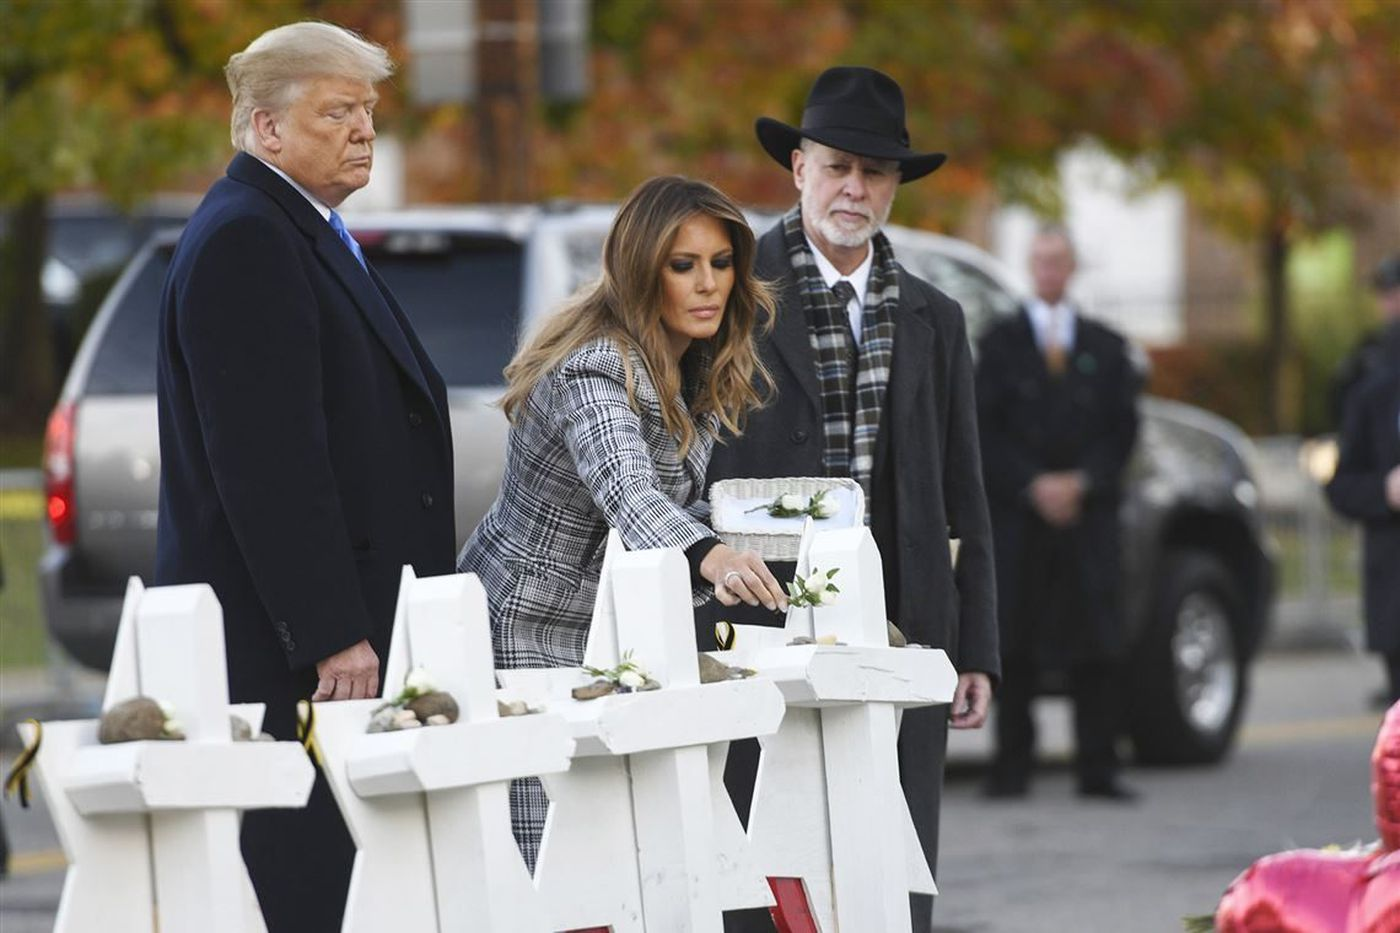 Trump threatens birthright citizenship, visits Pittsburgh; Eagles pick up Golden Tate | Morning Newsletter